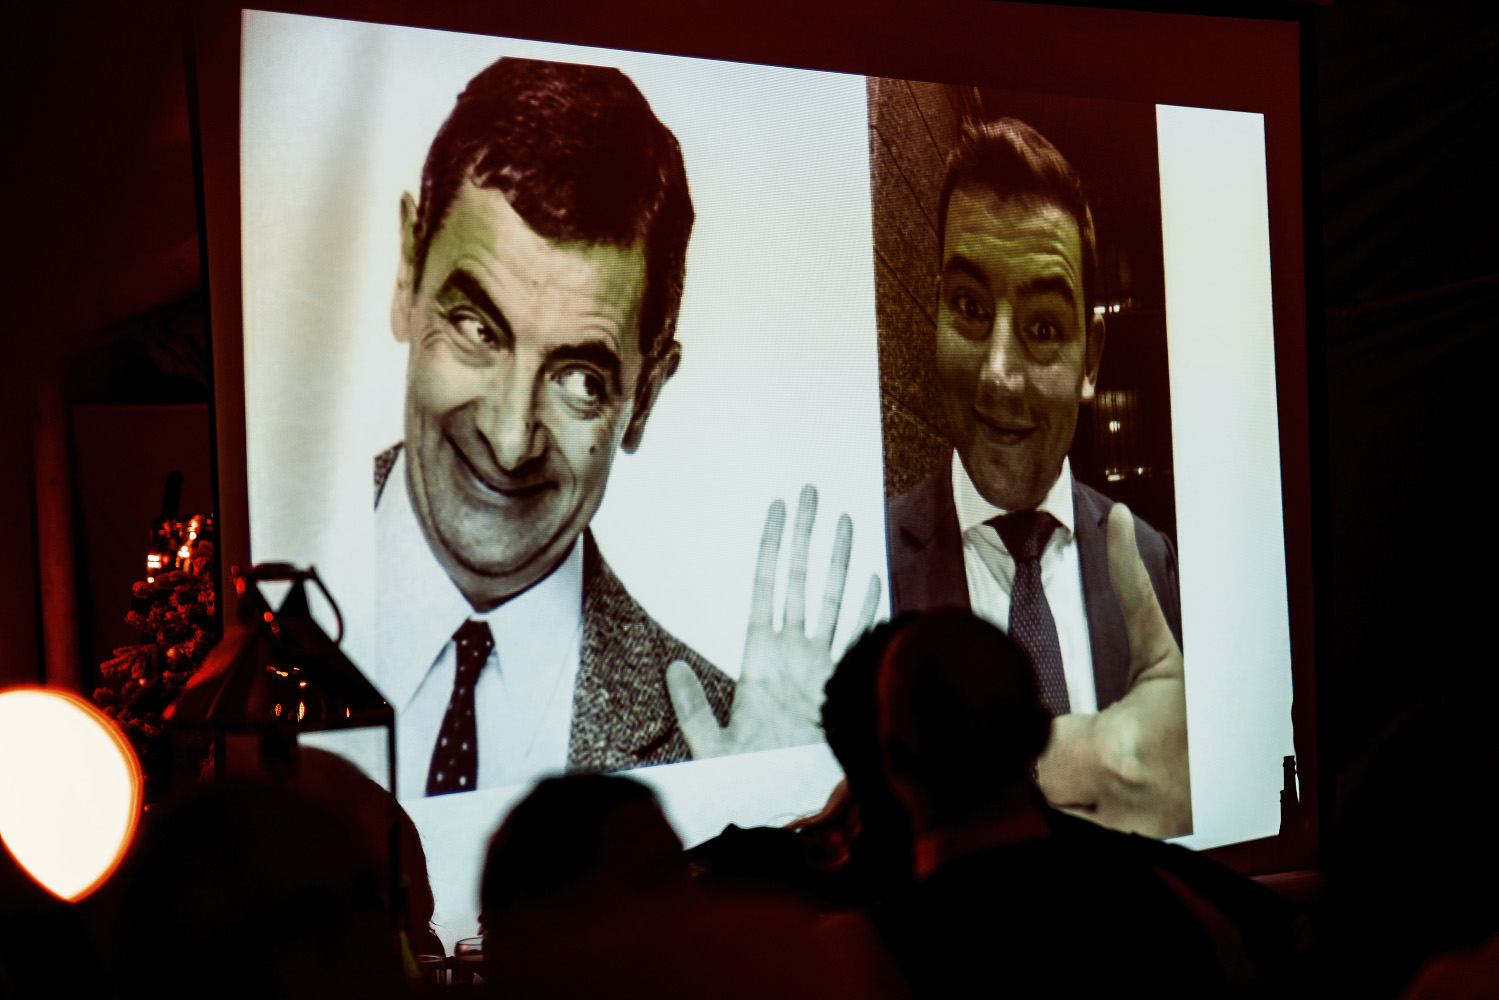 overhead projector with image of Mr Bean and the groom